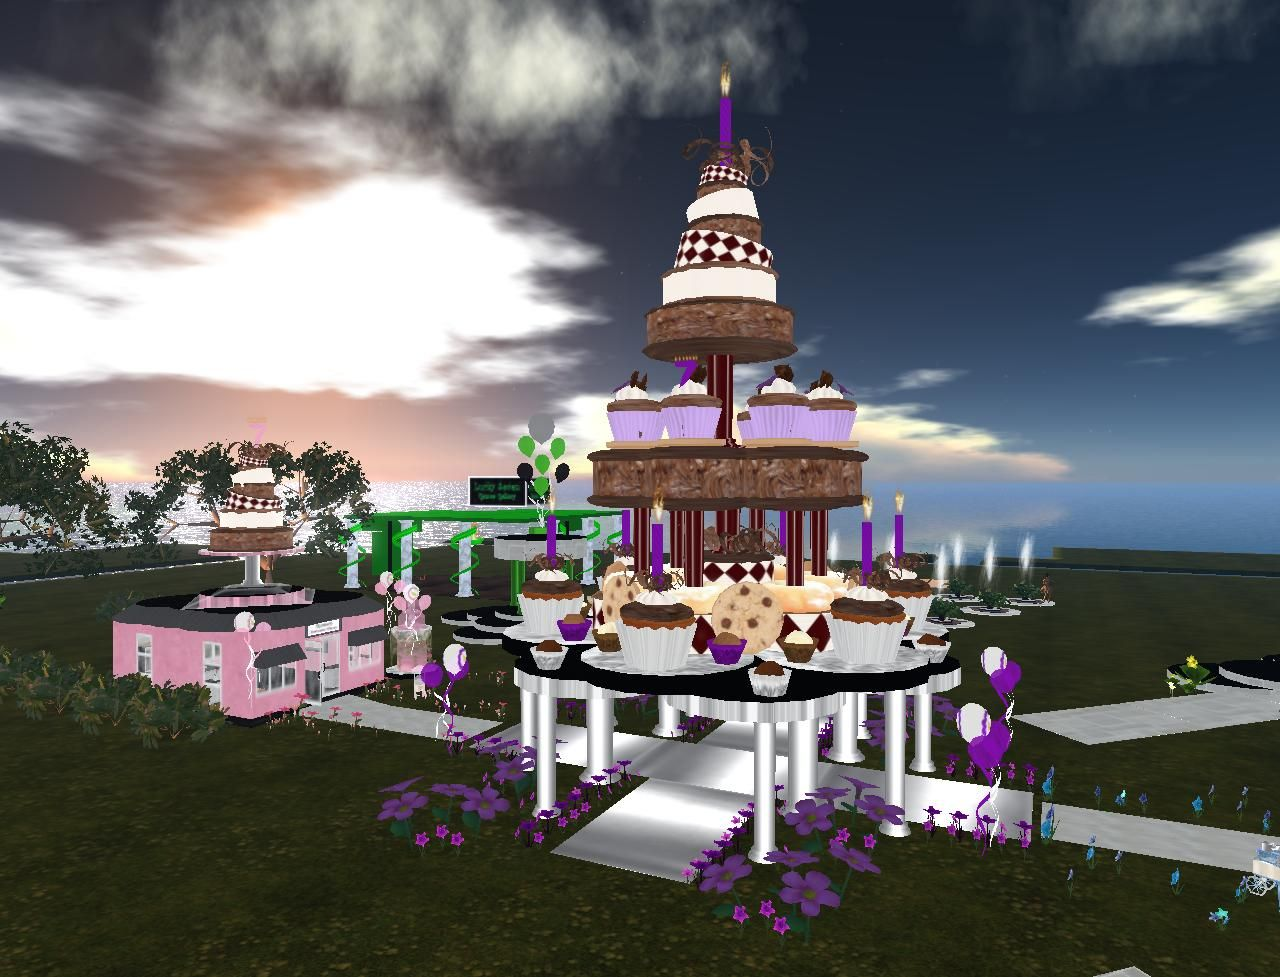 The Candy Store Is Open Sl7b Big Birthday Cake Candy Store And